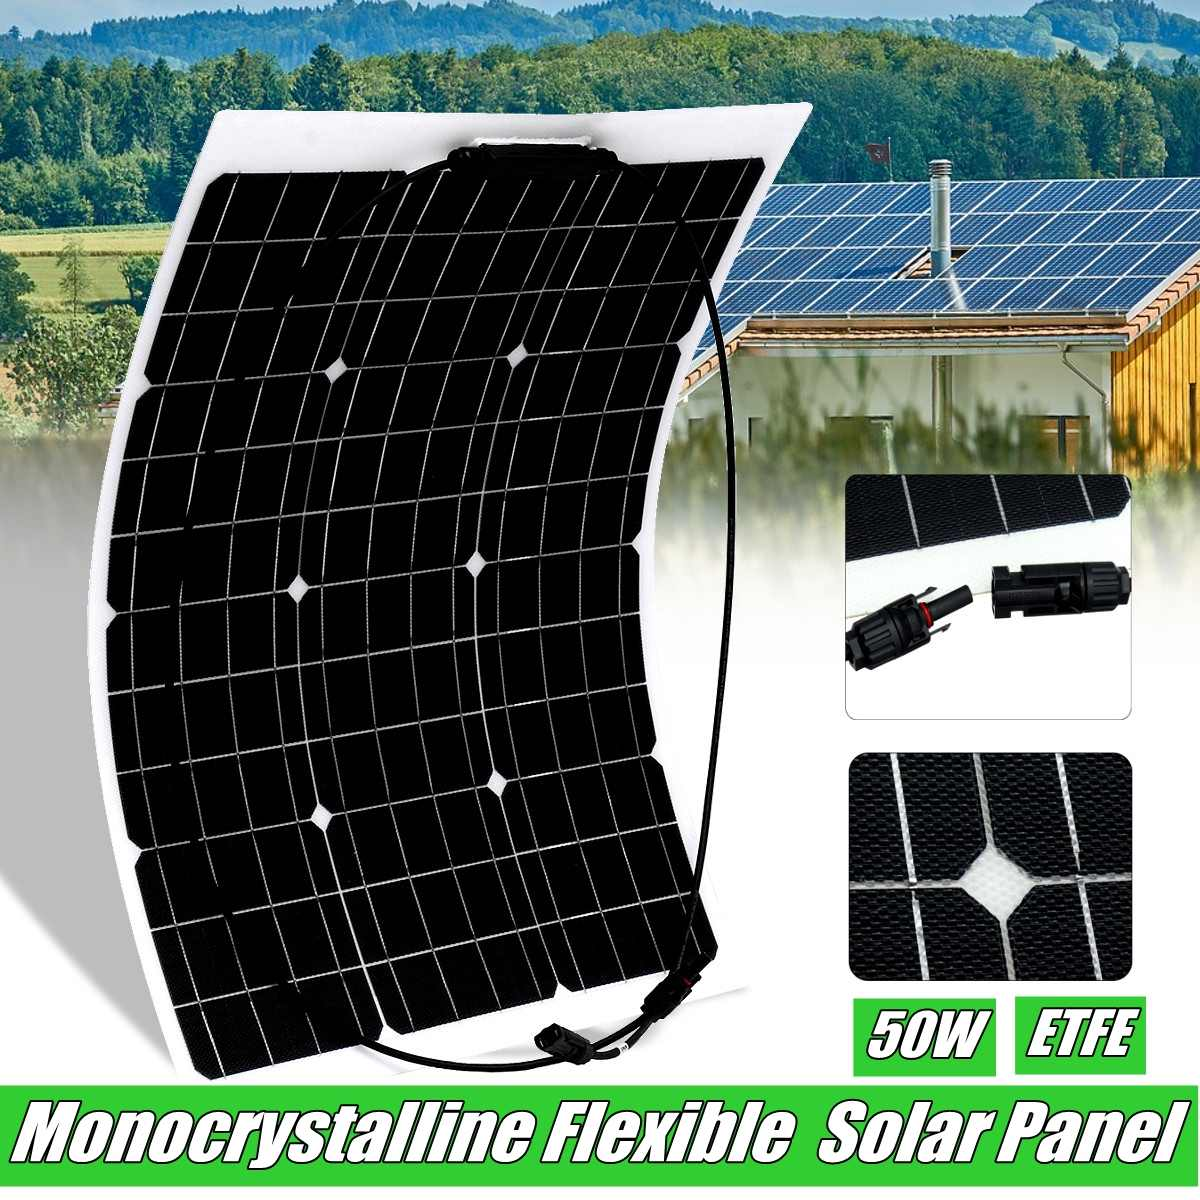 18V 50W Flexible Solar Panel Solar Charger For 12V Car Battery ETFE Monocrystalline Cells For Hause,boat,roof with MC4 Cable18V 50W Flexible Solar Panel Solar Charger For 12V Car Battery ETFE Monocrystalline Cells For Hause,boat,roof with MC4 Cable